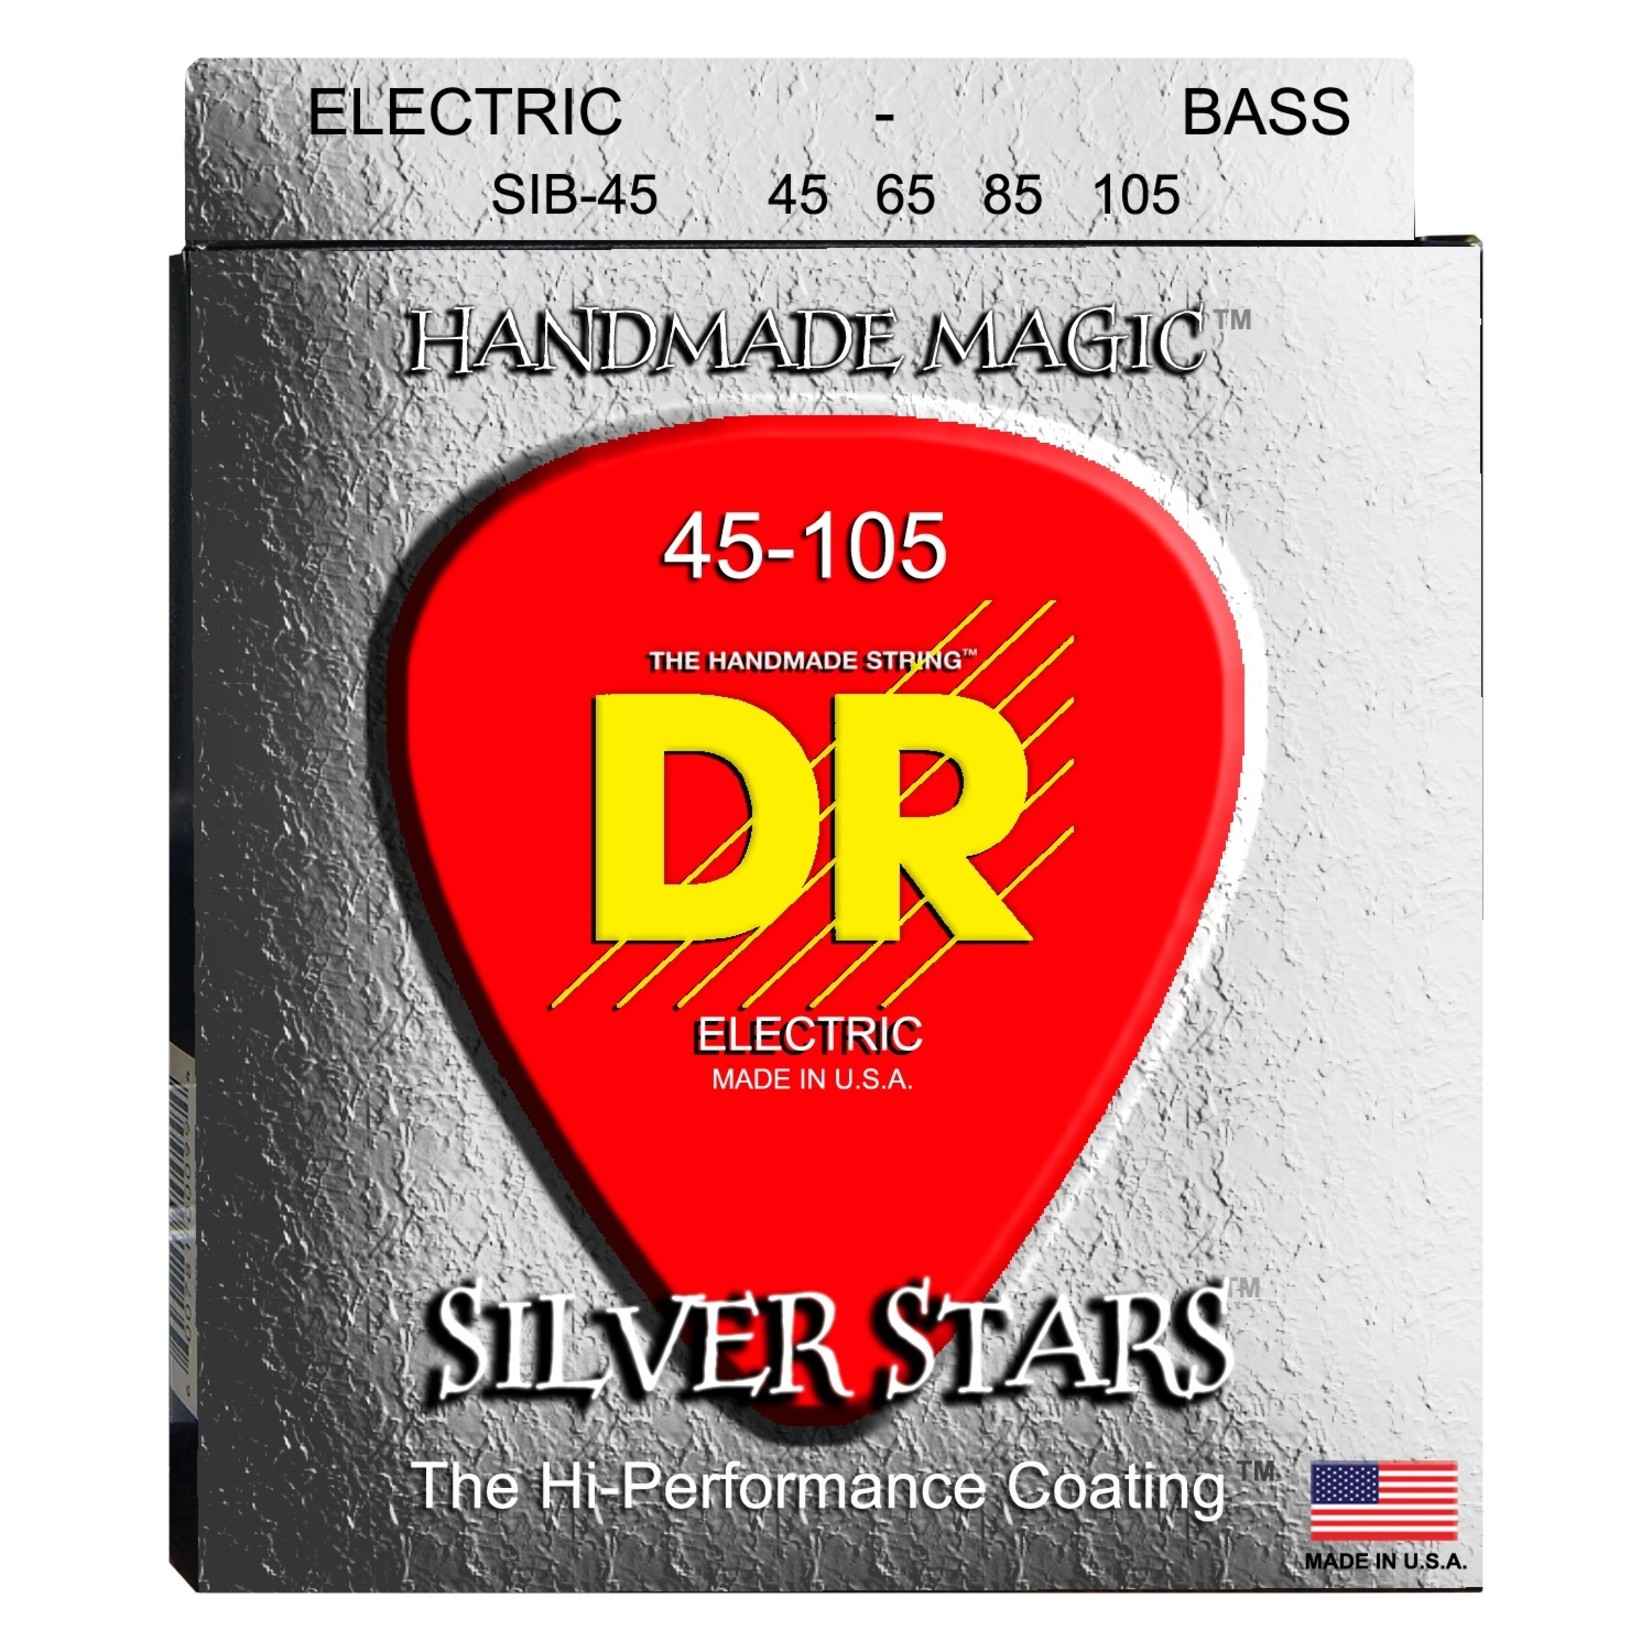 DR Strings DR Strings SIB-45 Silver Stars K3 Coated Electric Bass Strings, Silver, 4-String Set (45-105)